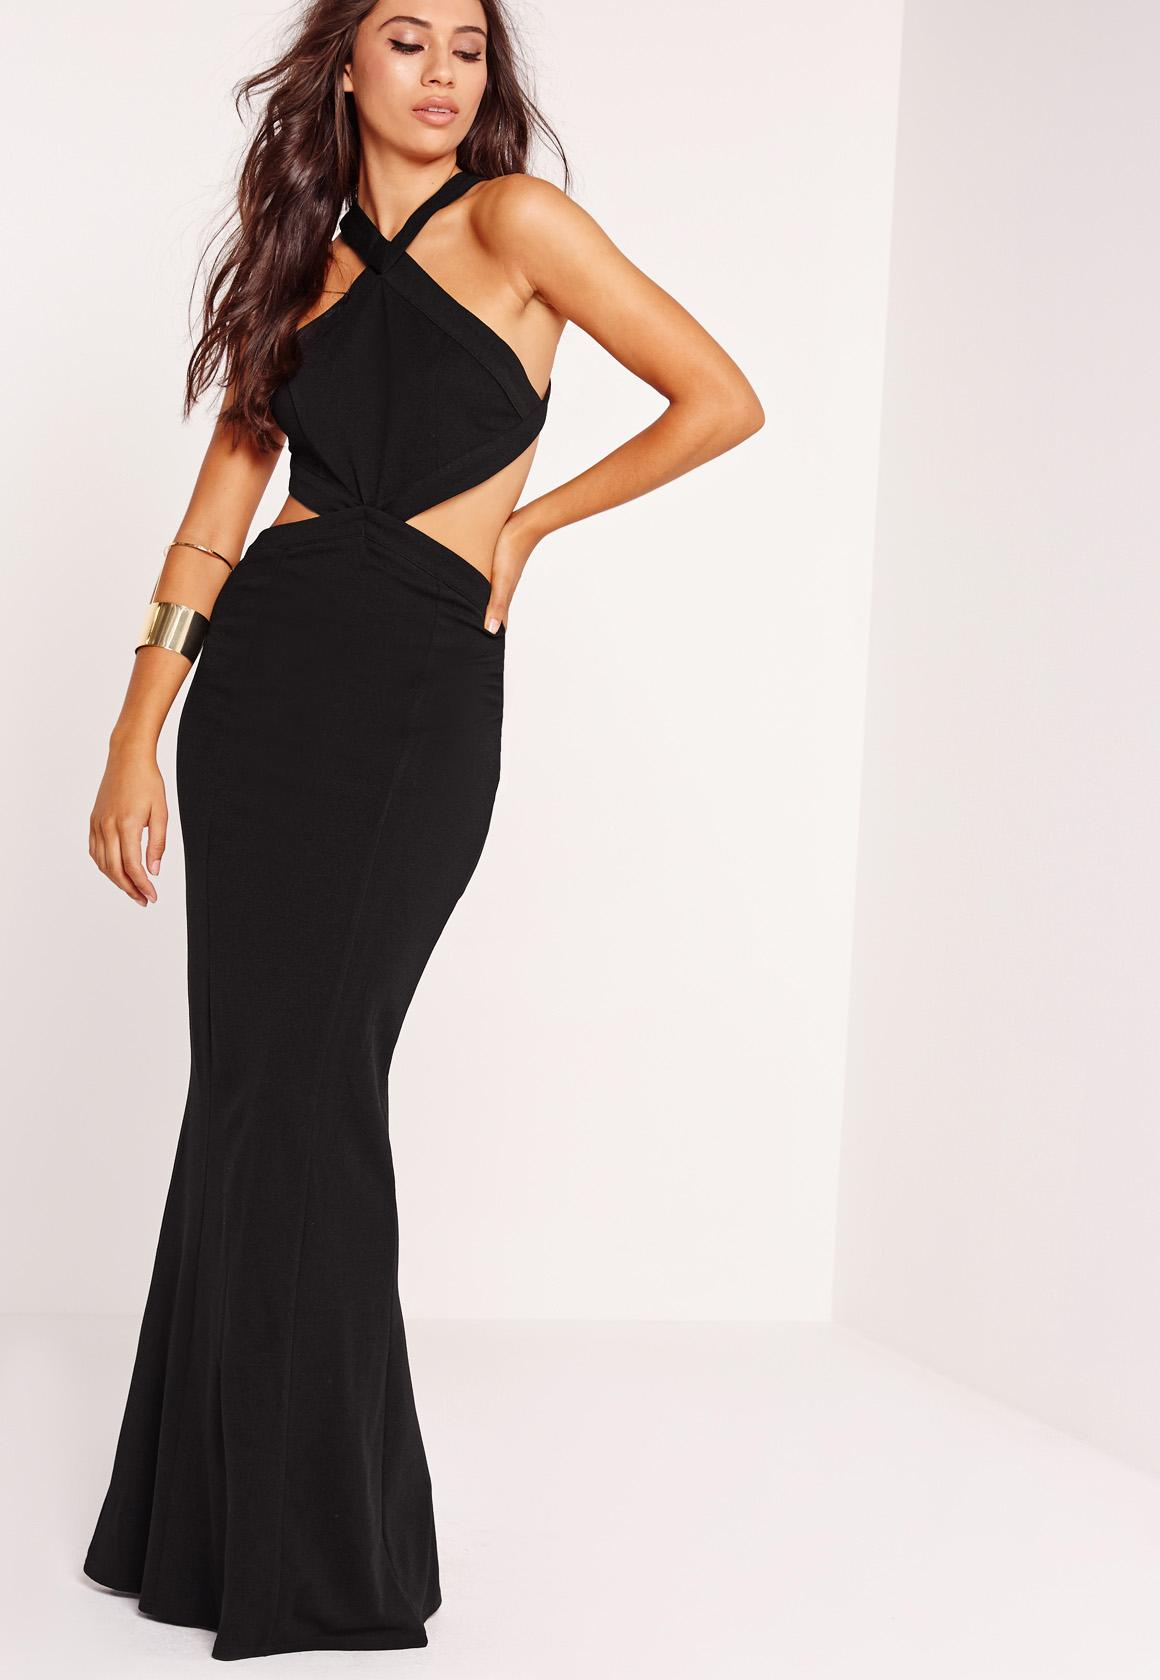 Cross Strap Cut Out Maxi Dress Black | Missguided